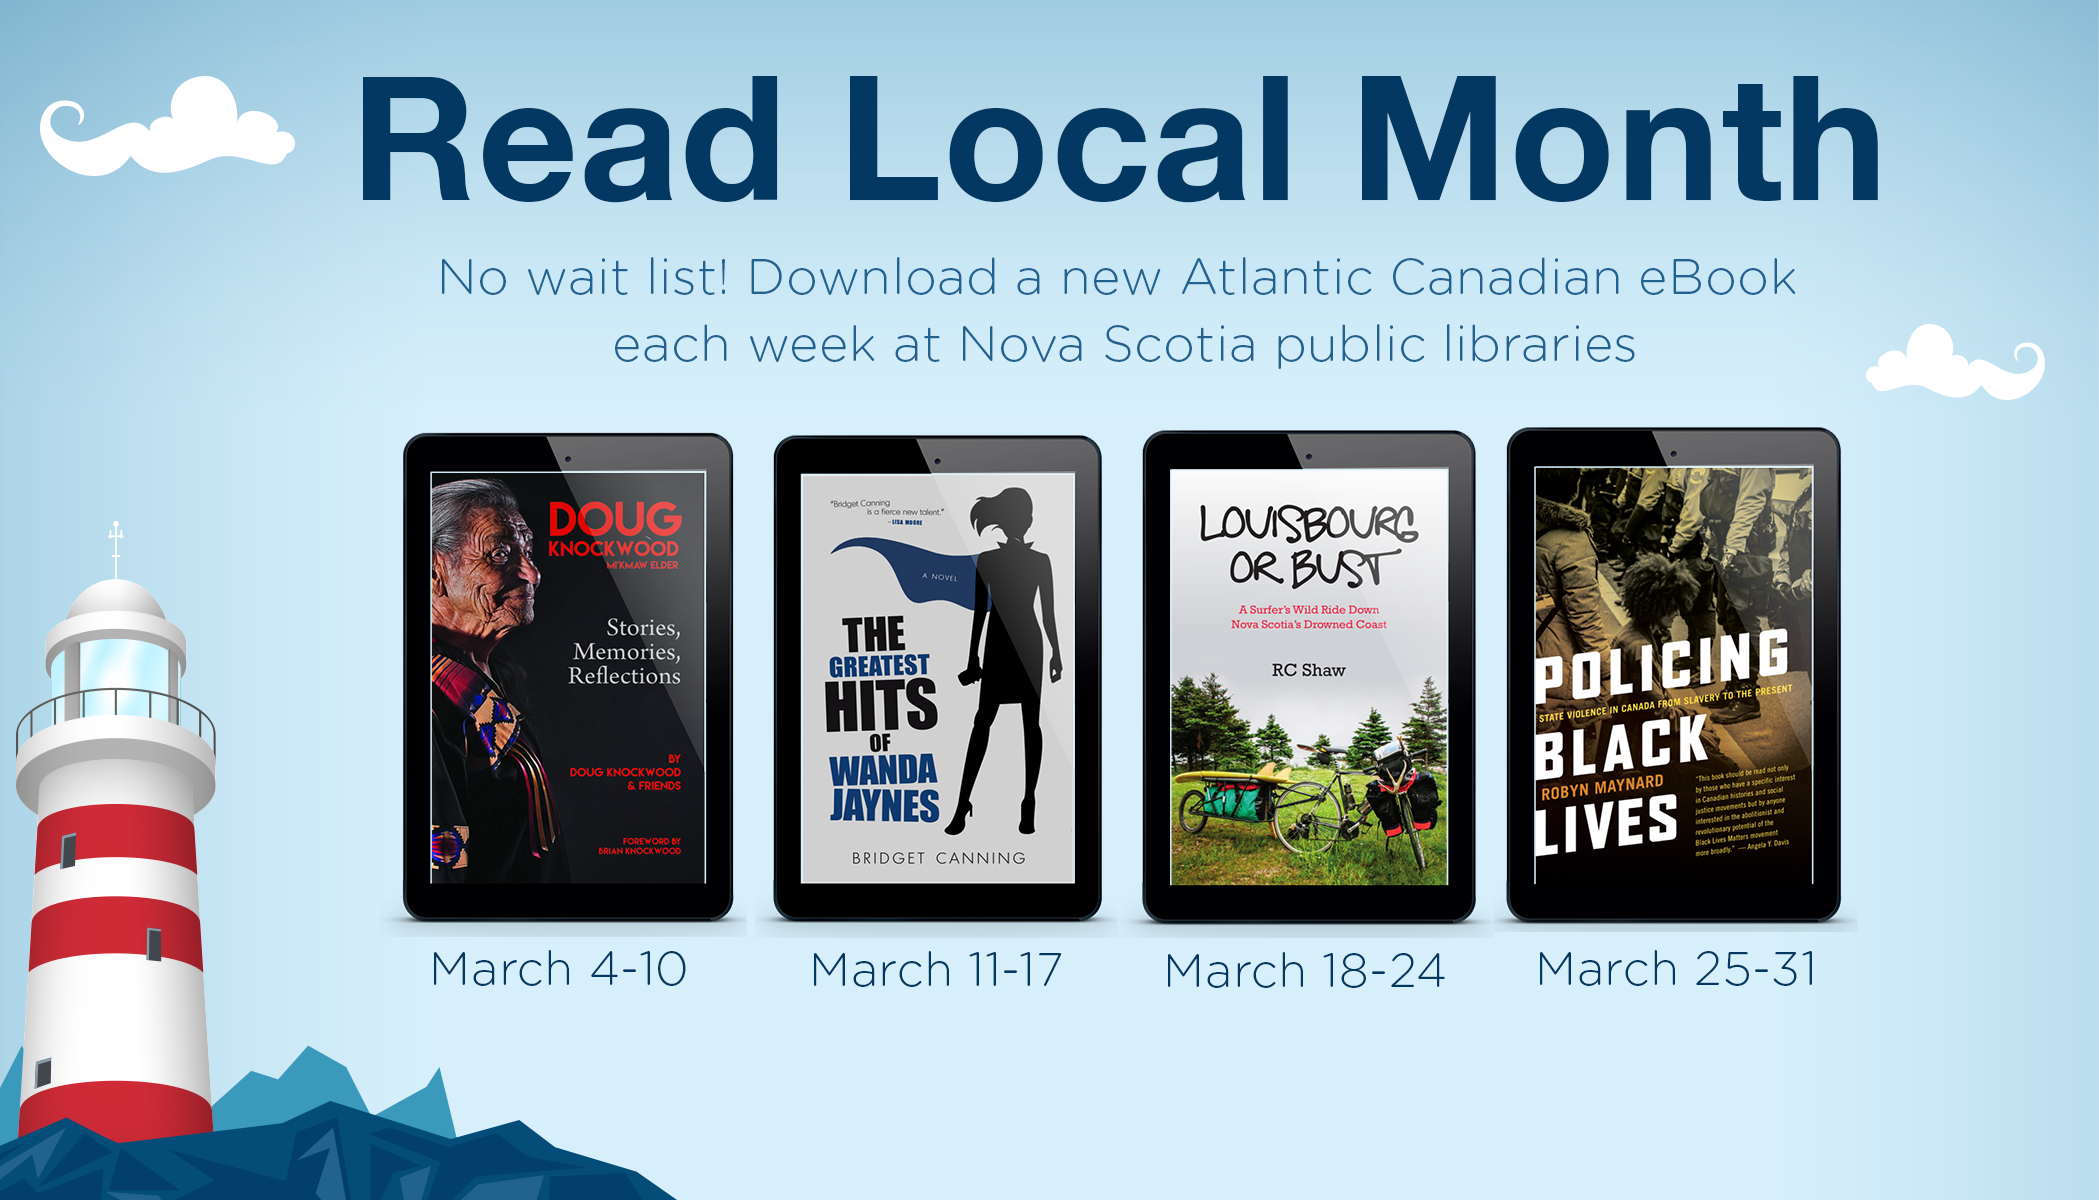 Read Local Month